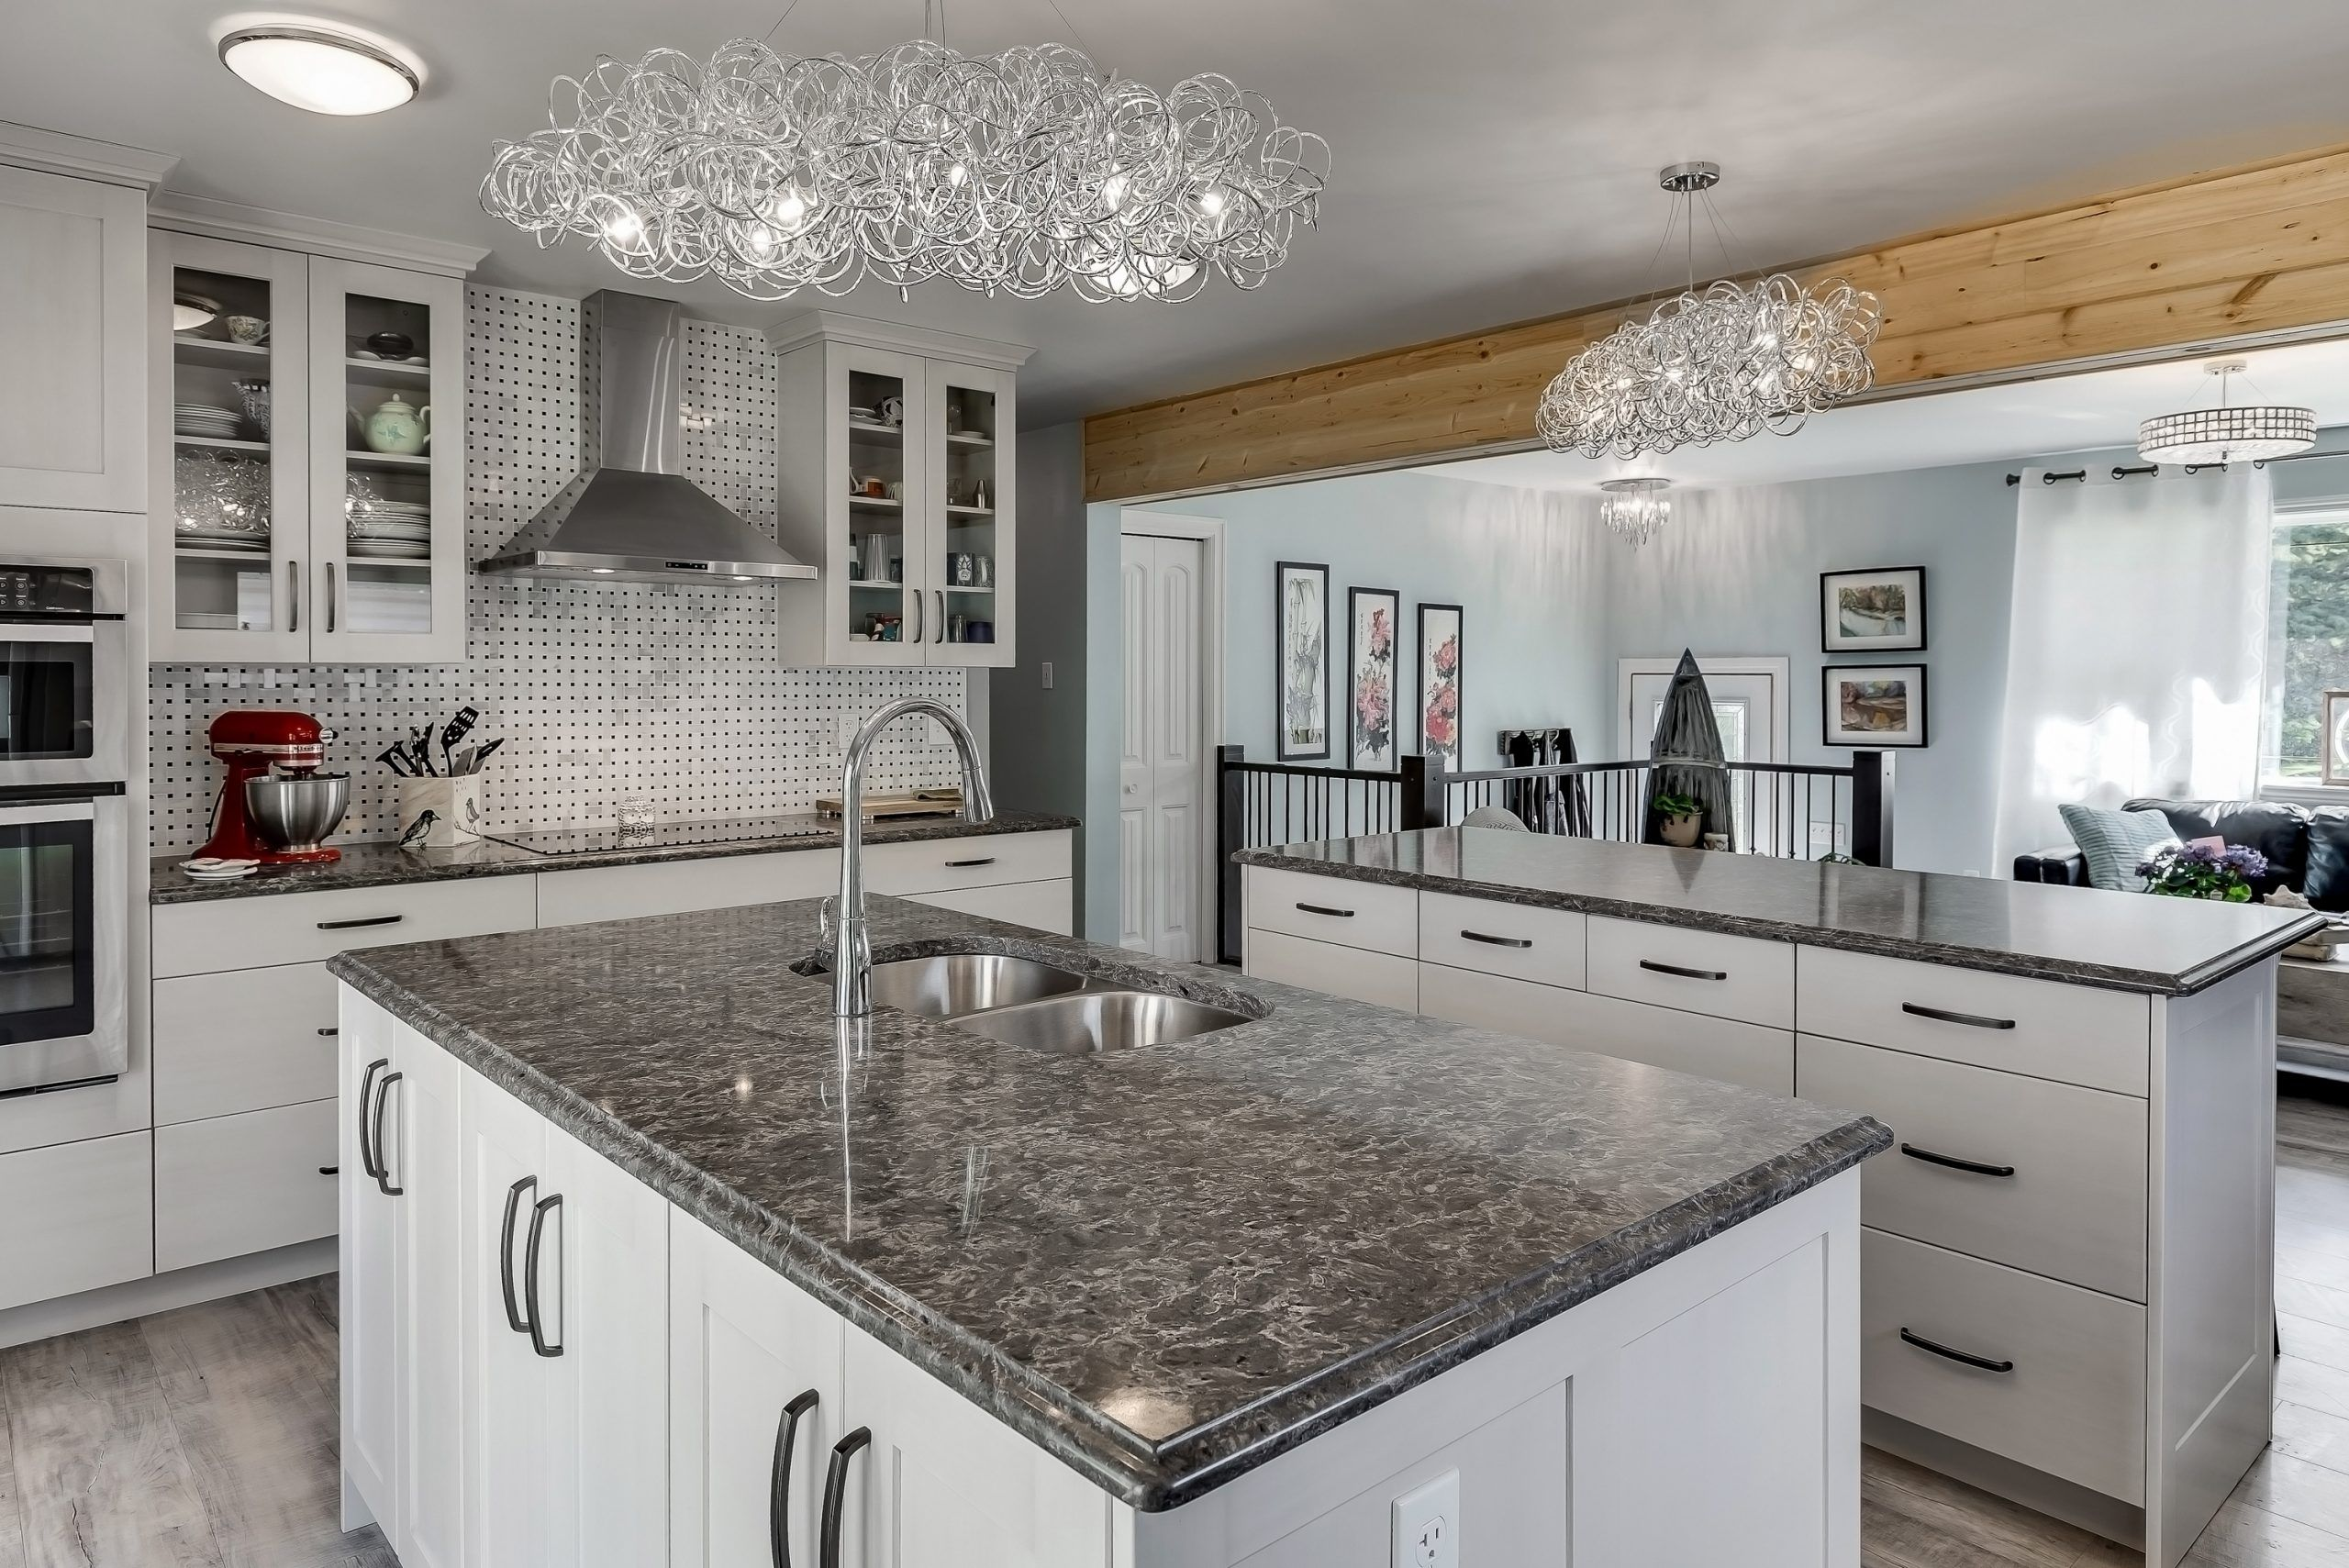 Canadas Superior Cabinets Acquired Buller Family In 2020 Kitchen Cabinets Kitchen Cabinets For Sale Open Kitchen Cabinets